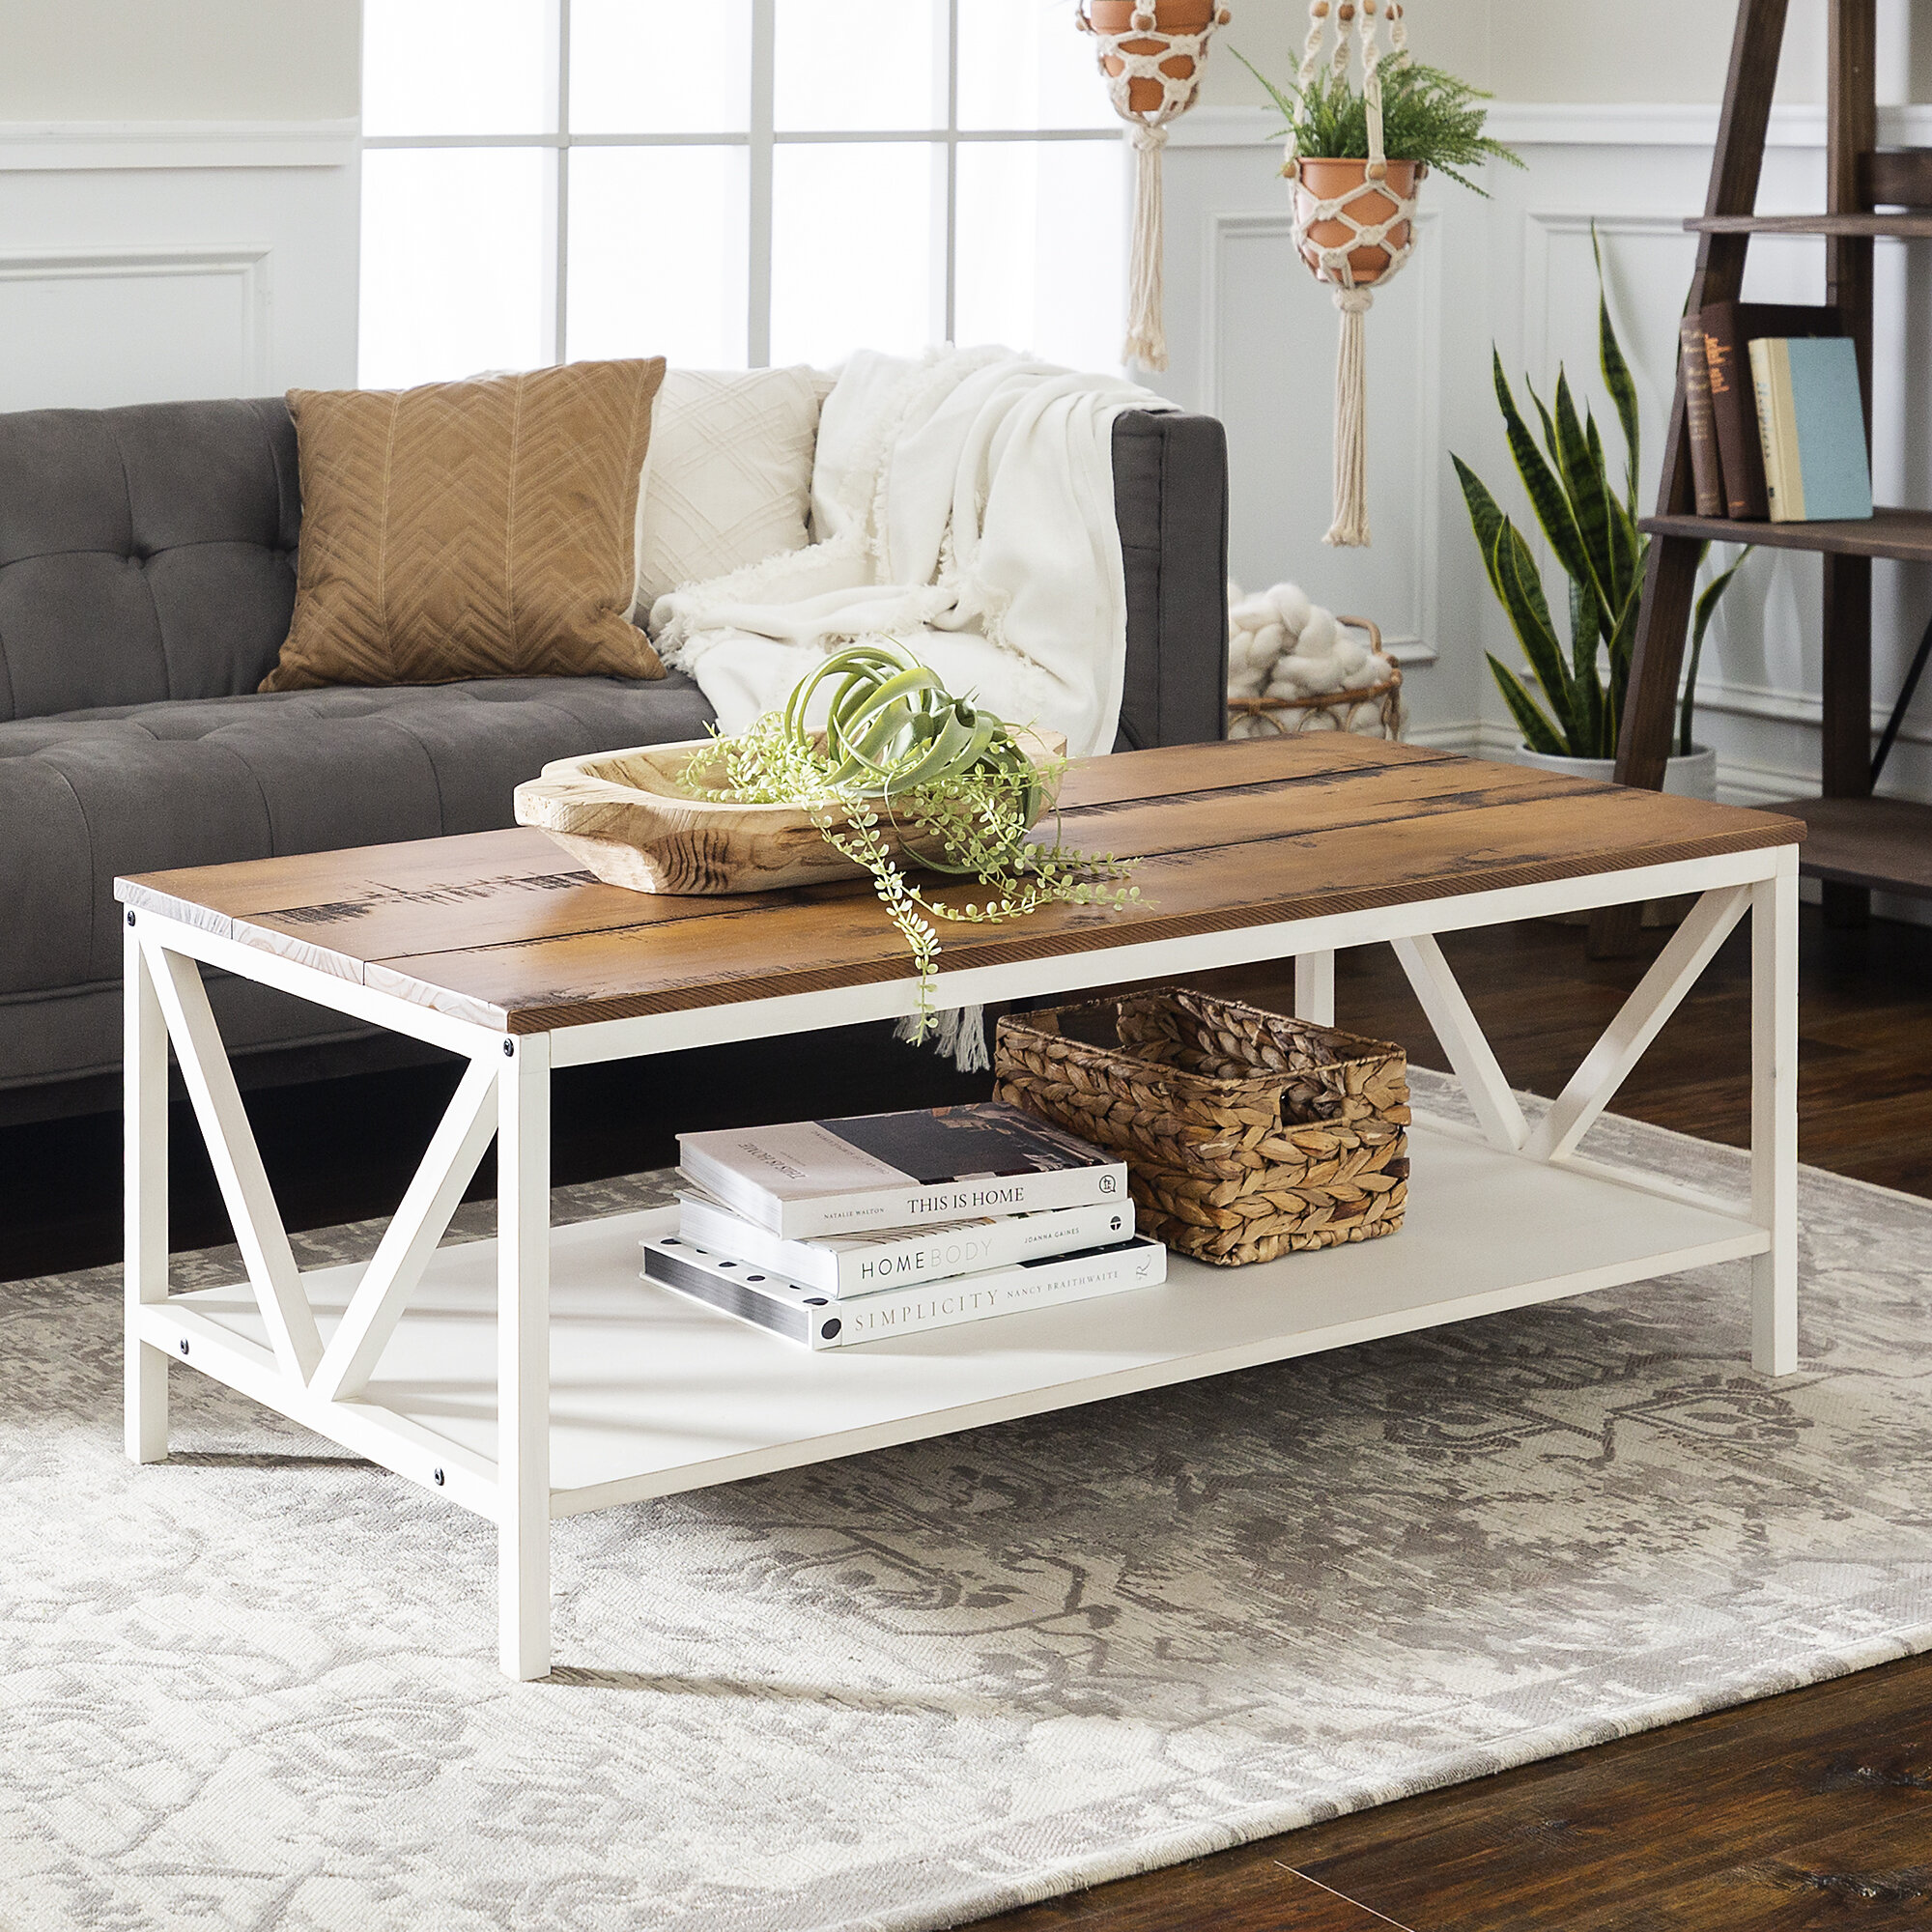 Light Wood Coffee Tables You Ll Love In 2021 Wayfair